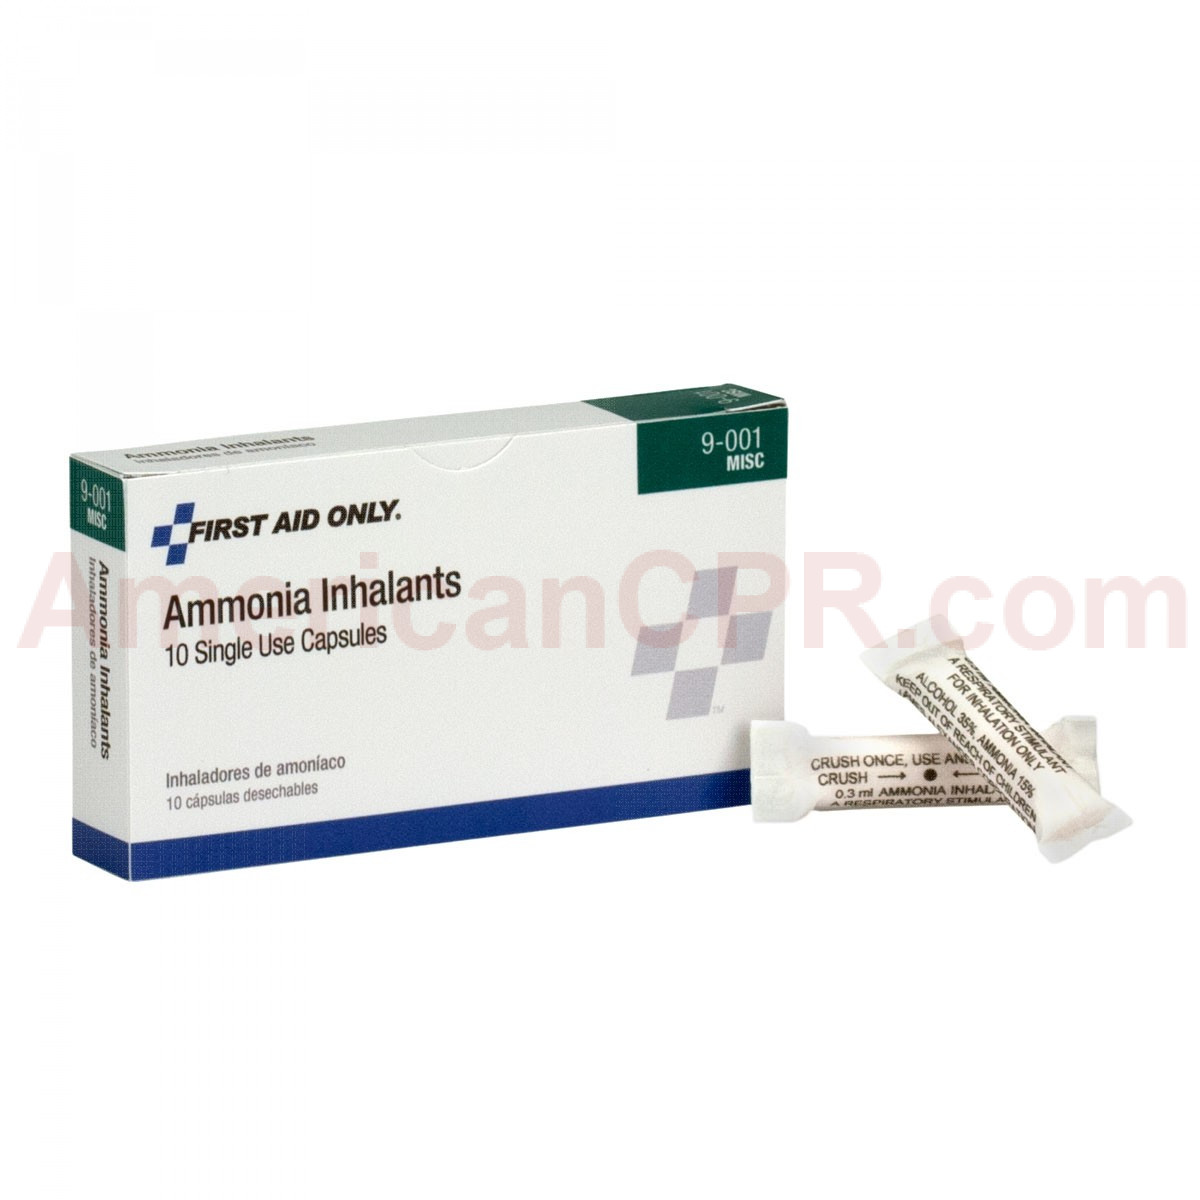 Ammonia Inhalant (Smelling Salts) Ampoules / Ampules - 10 Per Box - Pac-Kit by First Aid Only